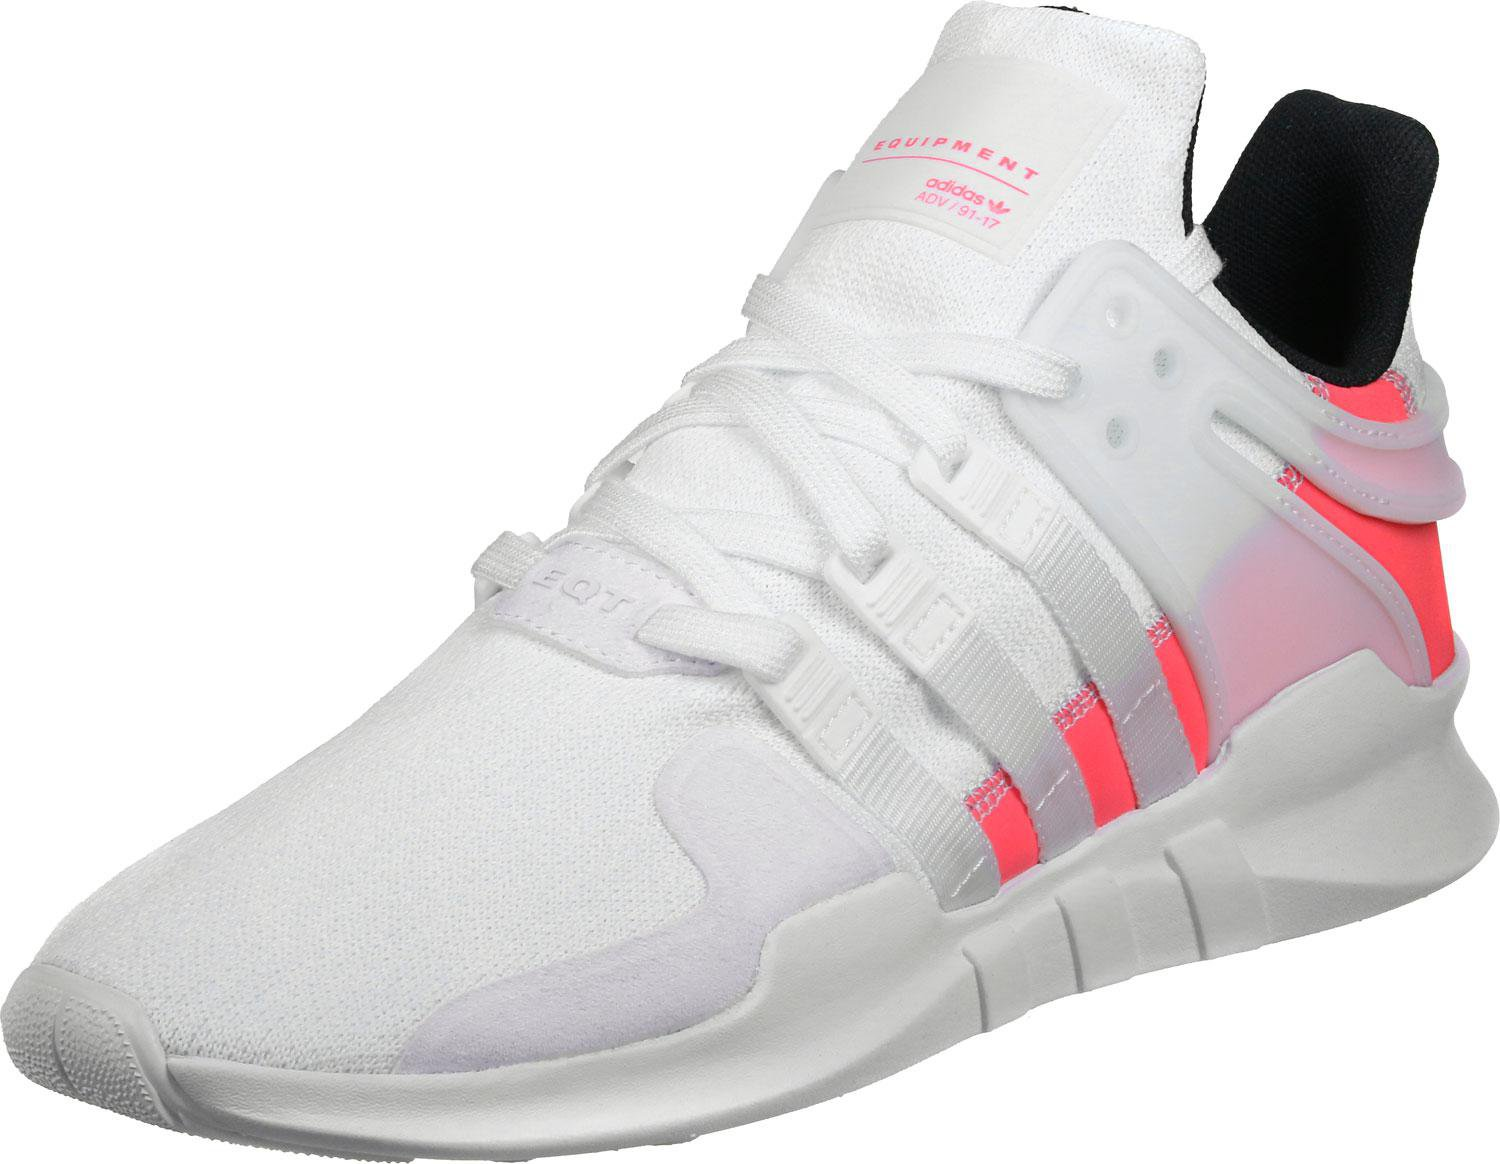 Adidas EQT Support ADV Low-Top-Sneaker